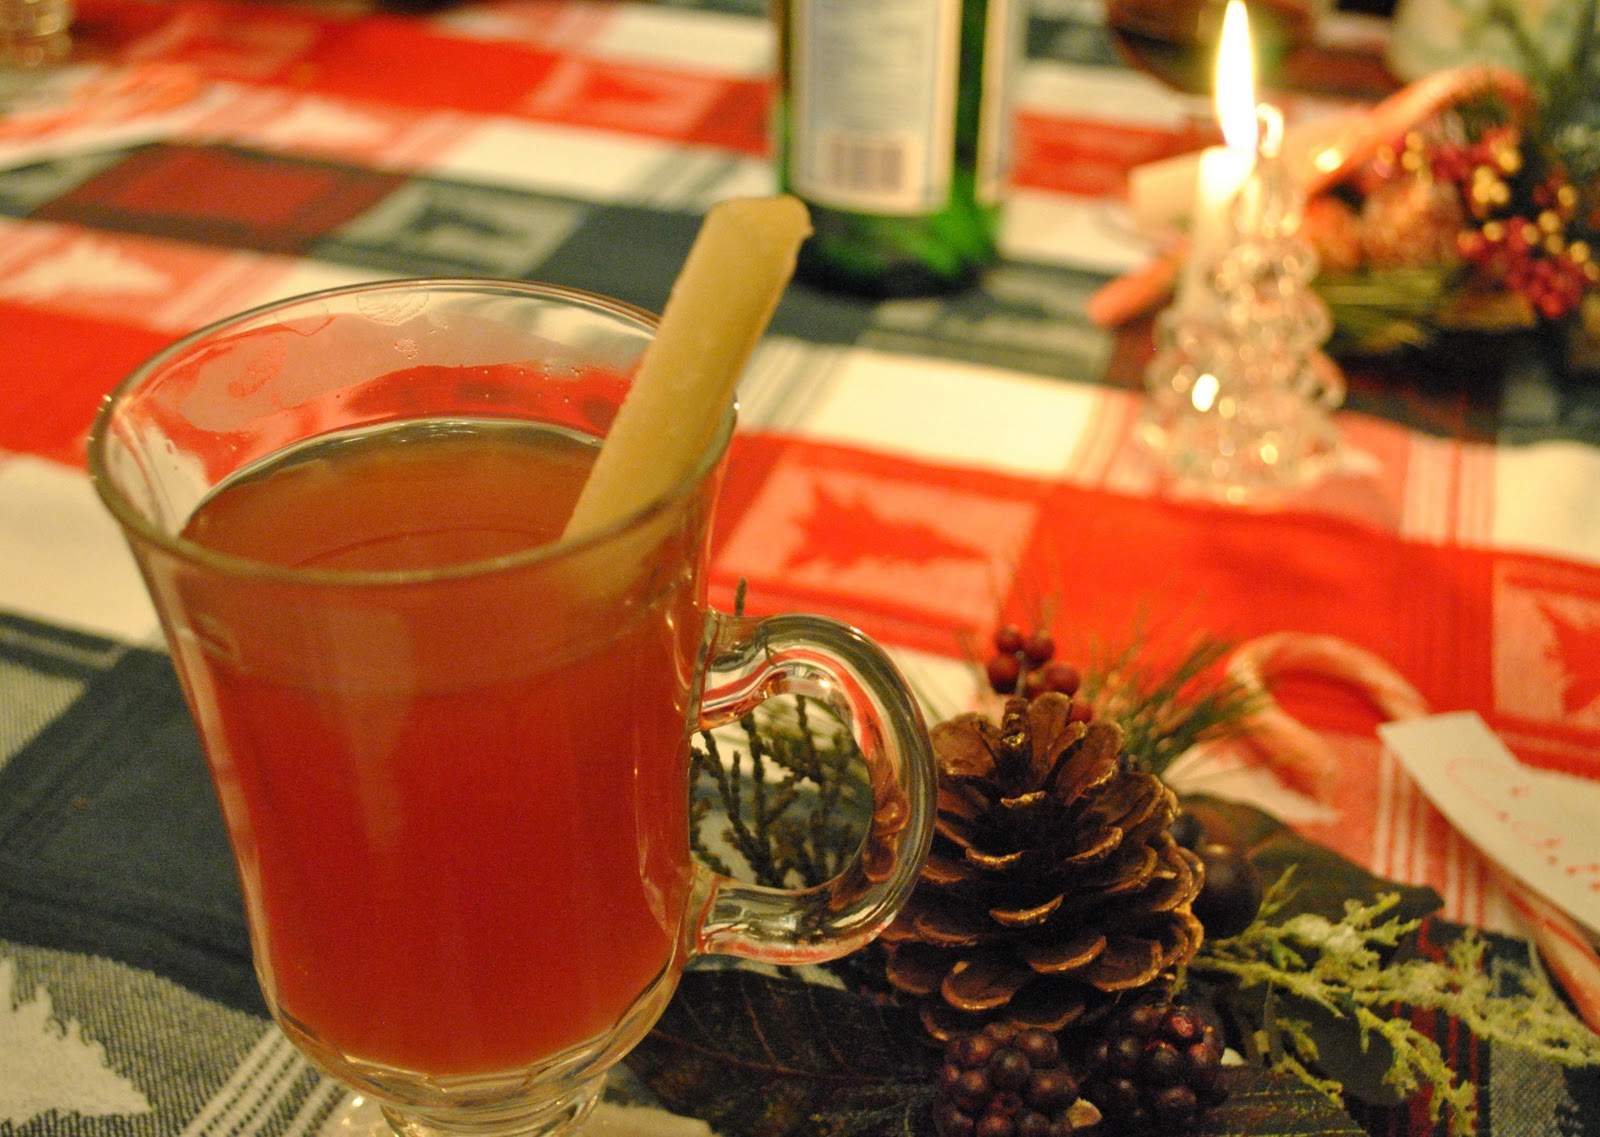 Culinary Adventures with Camilla: Ponche Navideño (Christmas Punch)